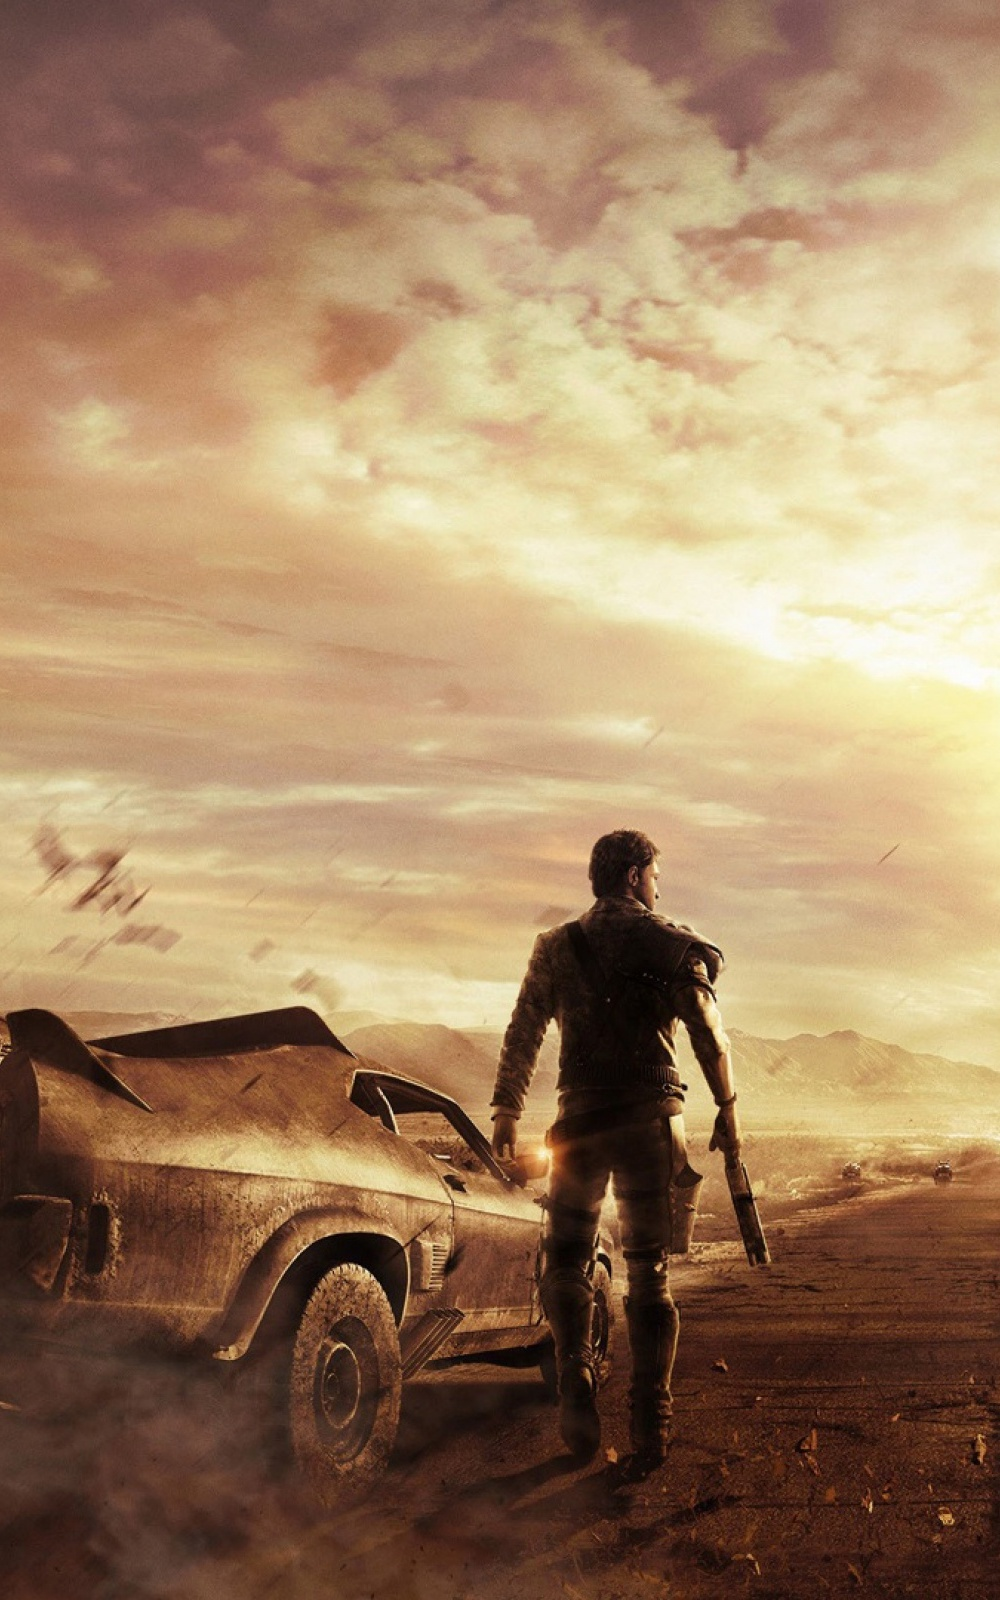 2014 mad max game mobile wallpaper - mobiles wall